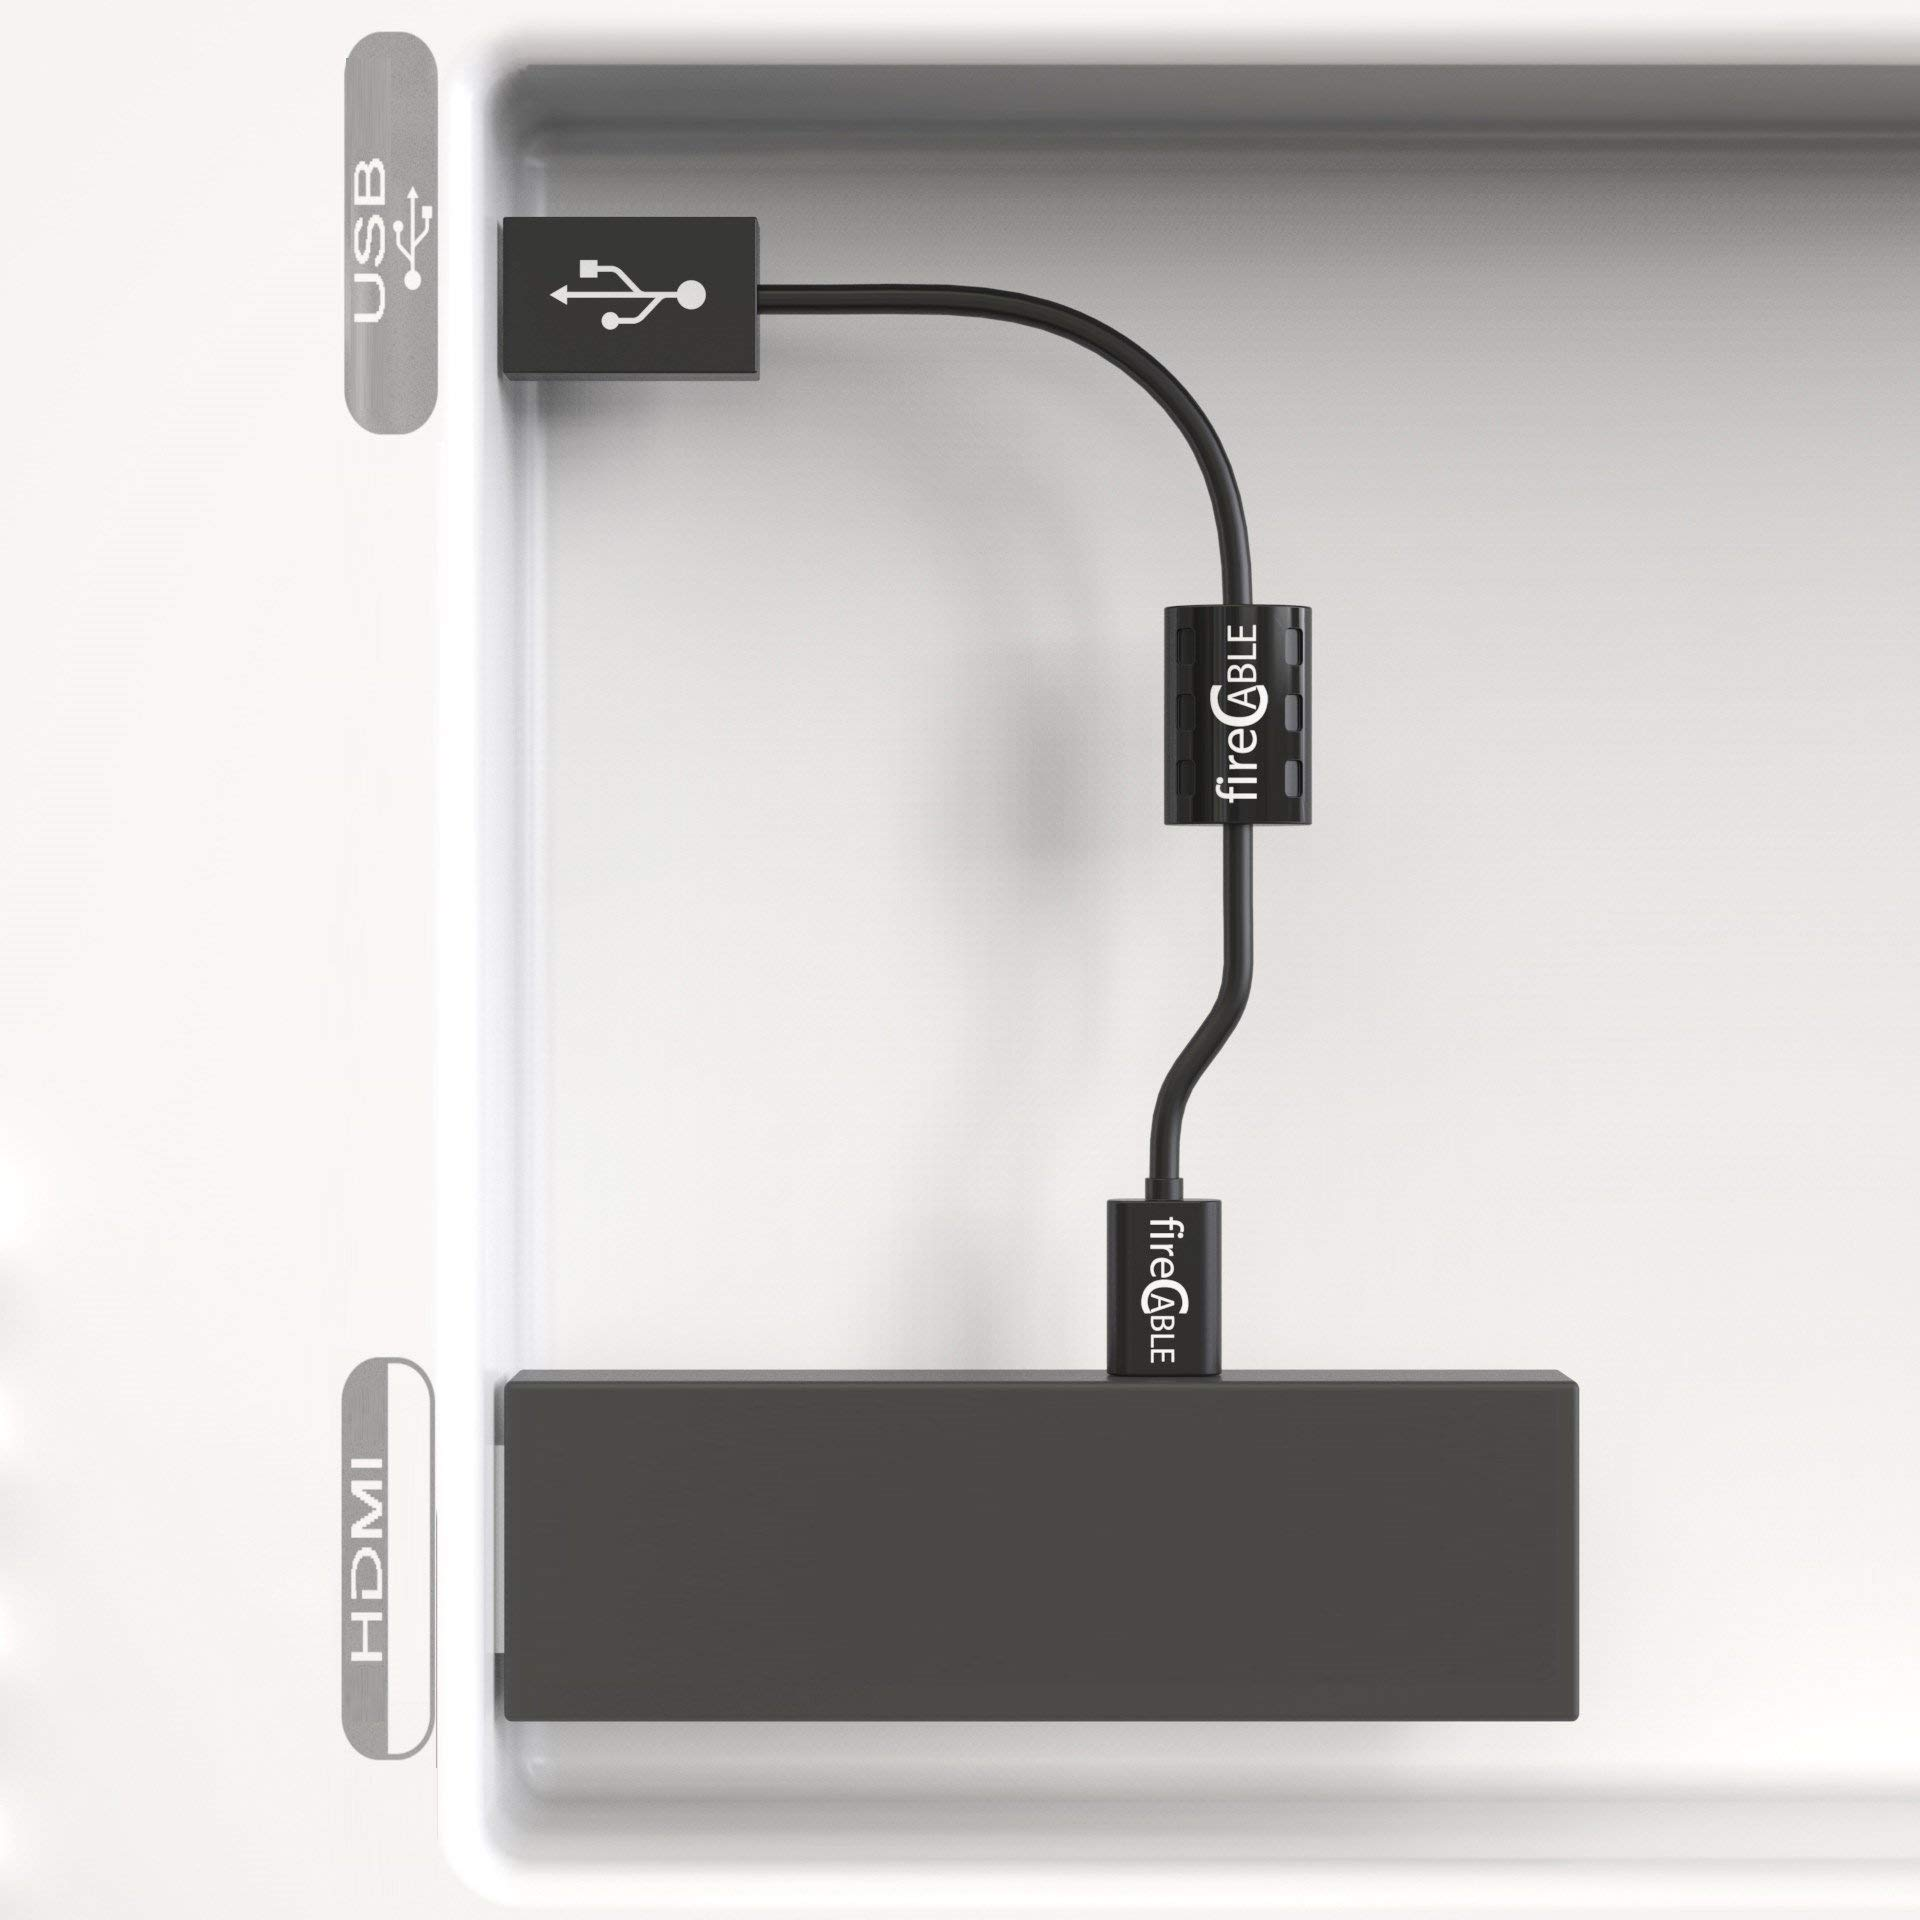 fire-Cable Power Adapter - Micro USB Cable for Streaming Sticks   Powers Device from Flat Screen TV